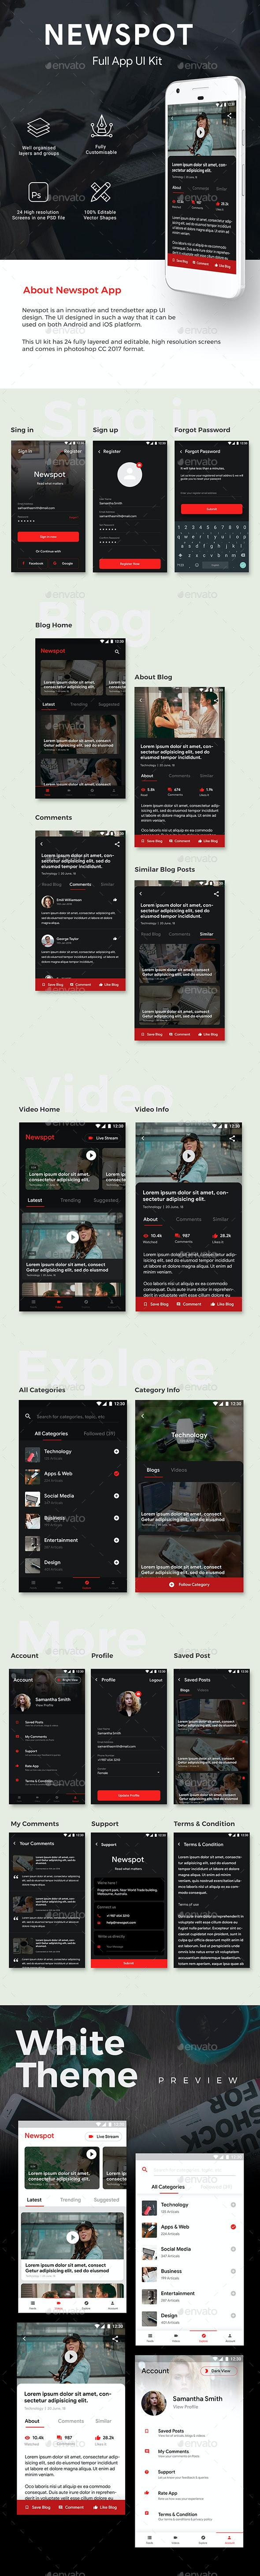 News, Magazines, Blogs Android + iOS App UI | Newspot - User Interfaces Web Elements